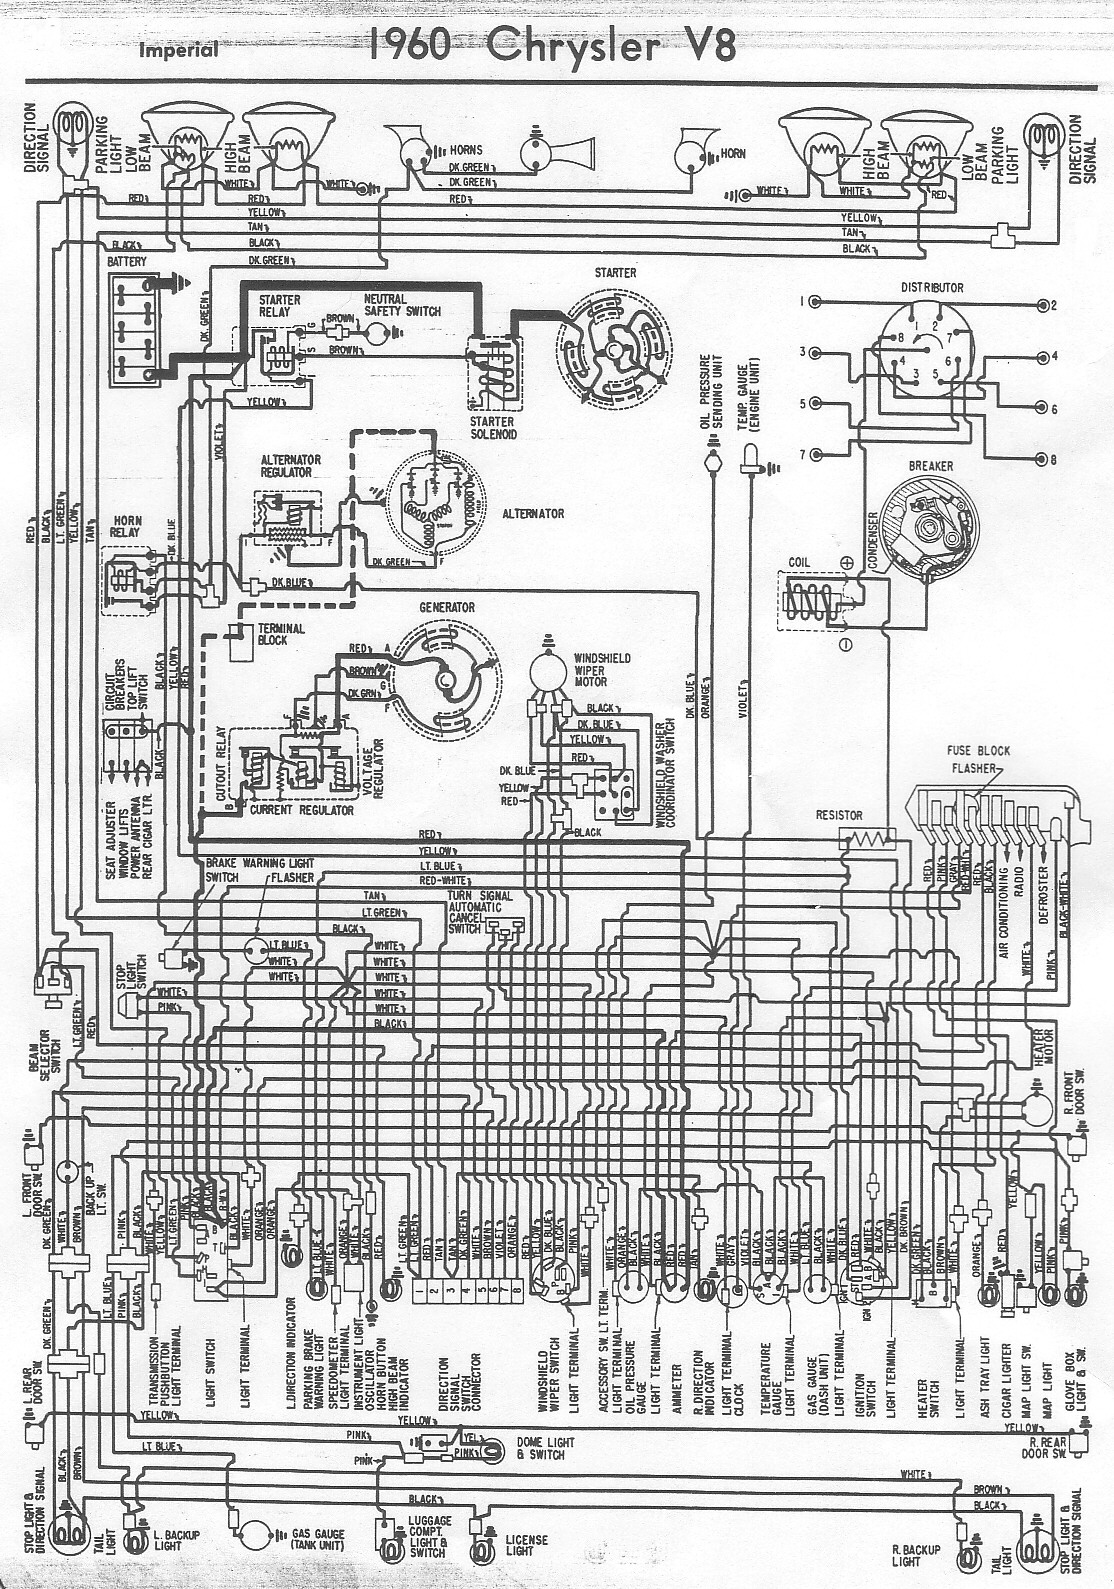 SY_9136] Imperial Fryer Wiring Diagram Download DiagramXlexi Rous Oxyt Pap Mohammedshrine Librar Wiring 101